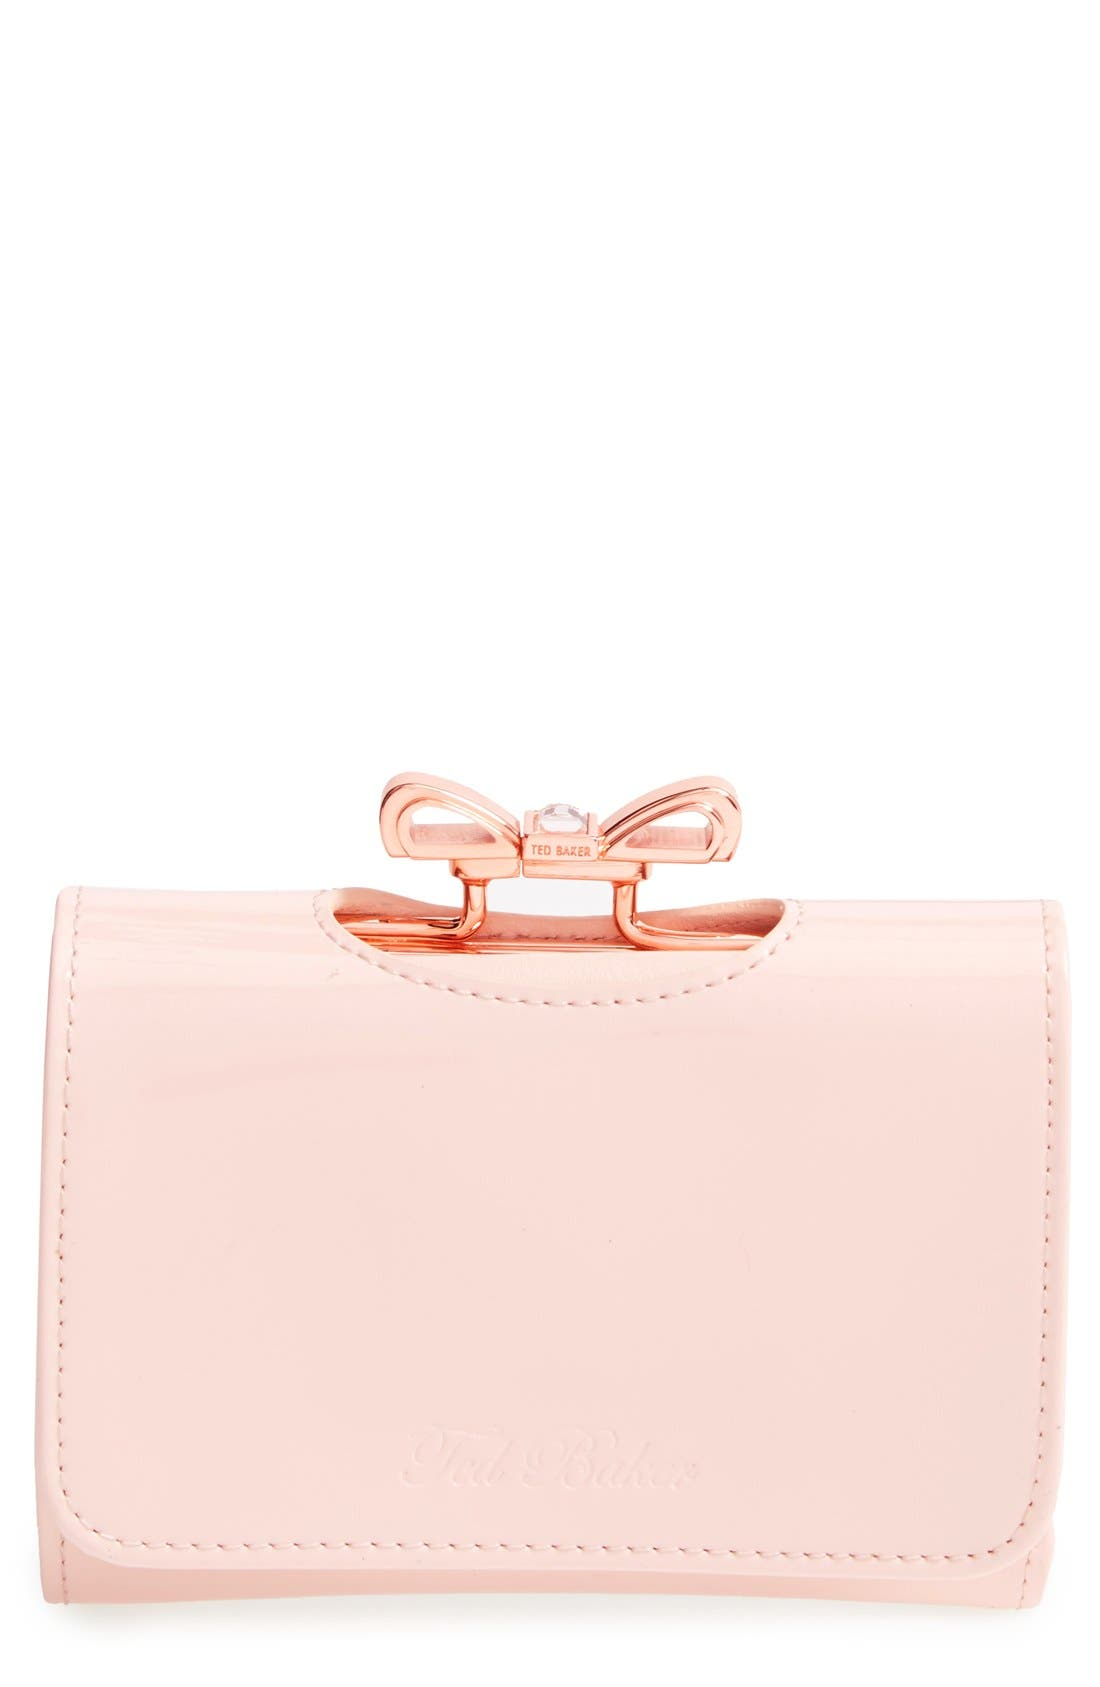 'Crystal Bow - Small' Patent Leather Clutch Wallet,                             Main thumbnail 1, color,                             Light Pink